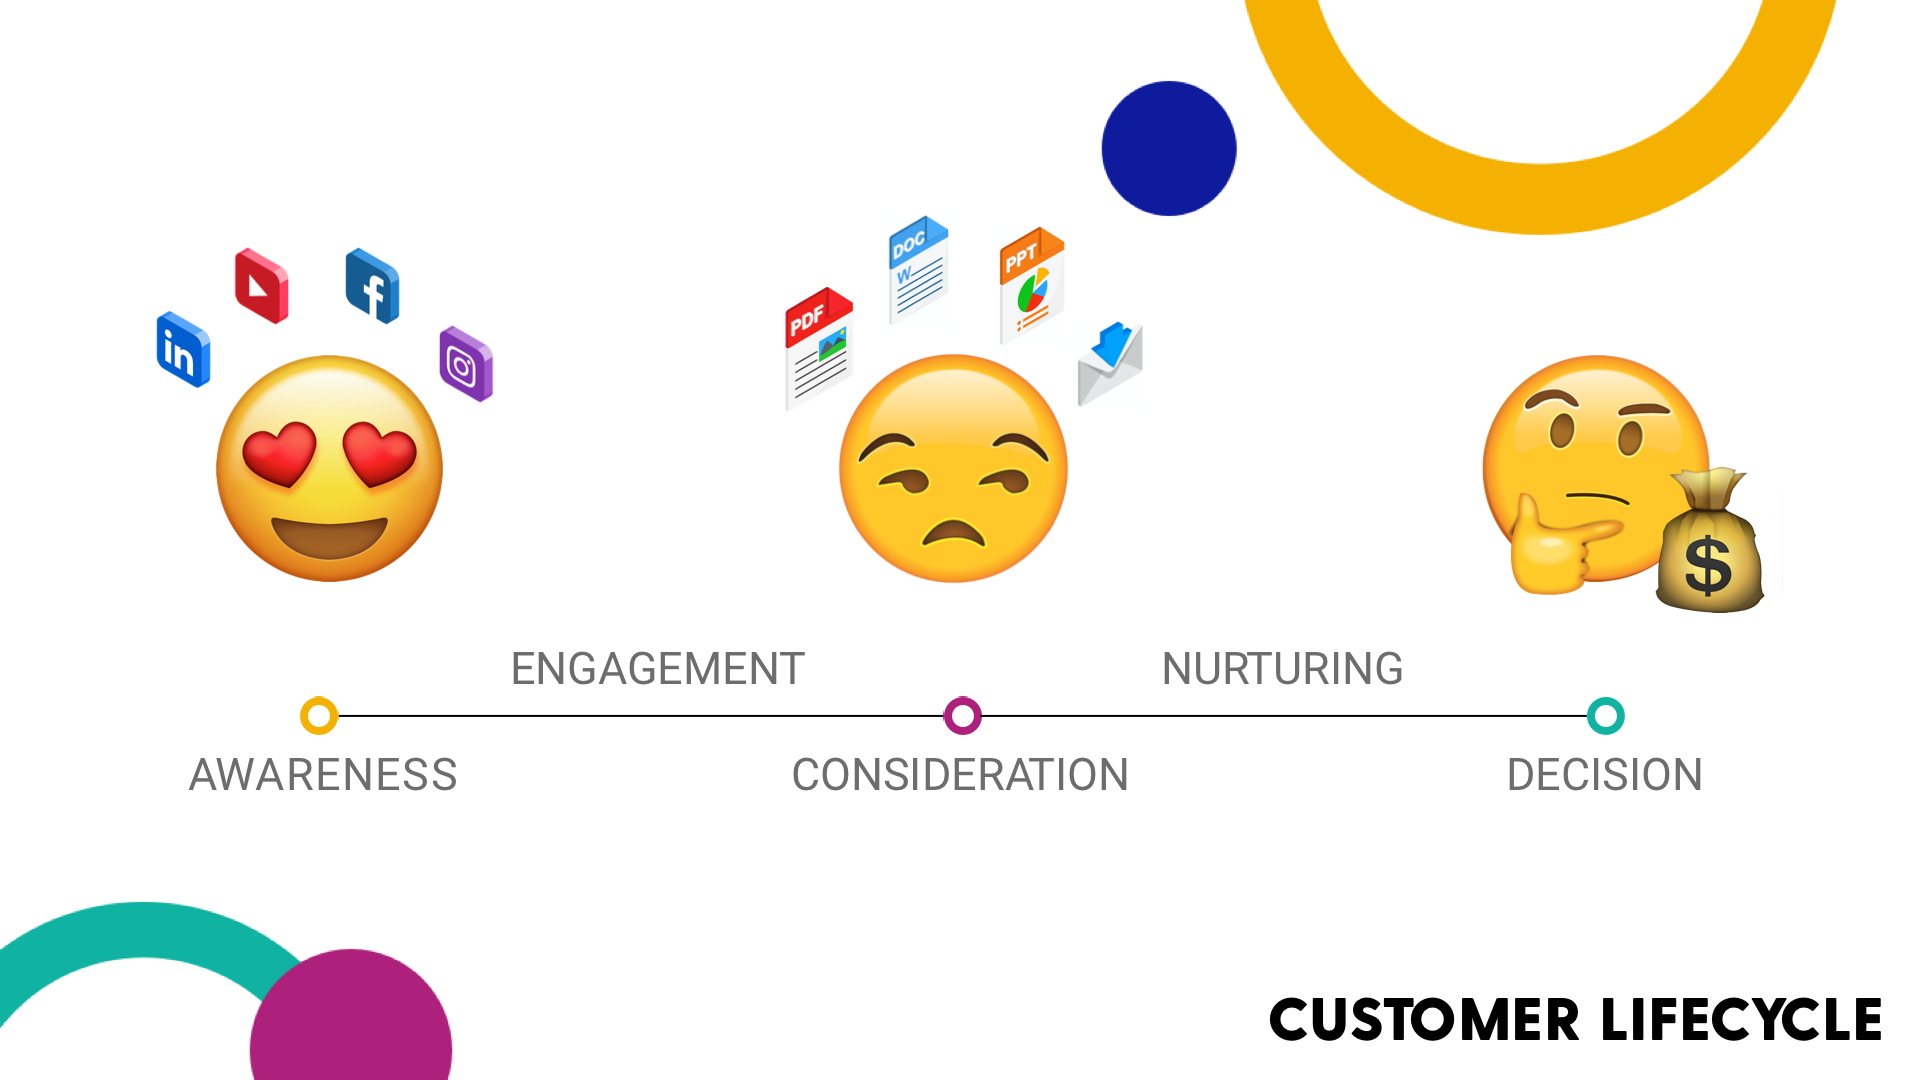 Static content in the customer lifecycle